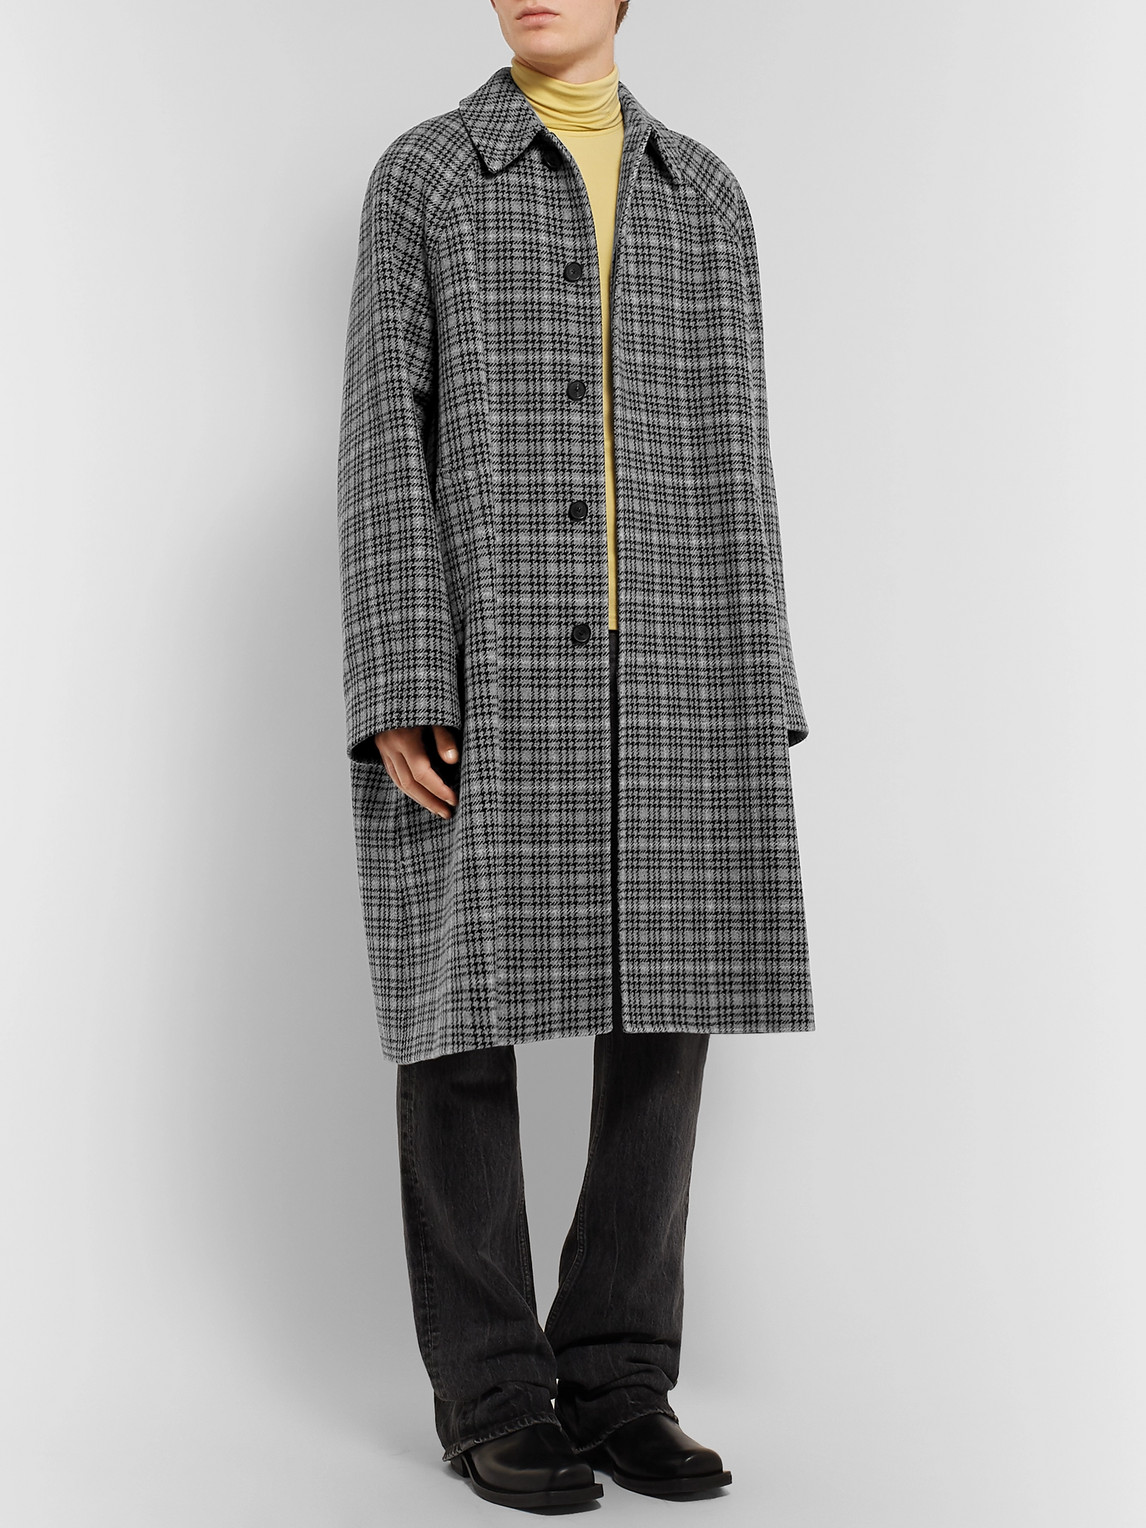 Balenciaga Coats OVERSIZED CHECKED VIRGIN WOOL-TWEED COAT